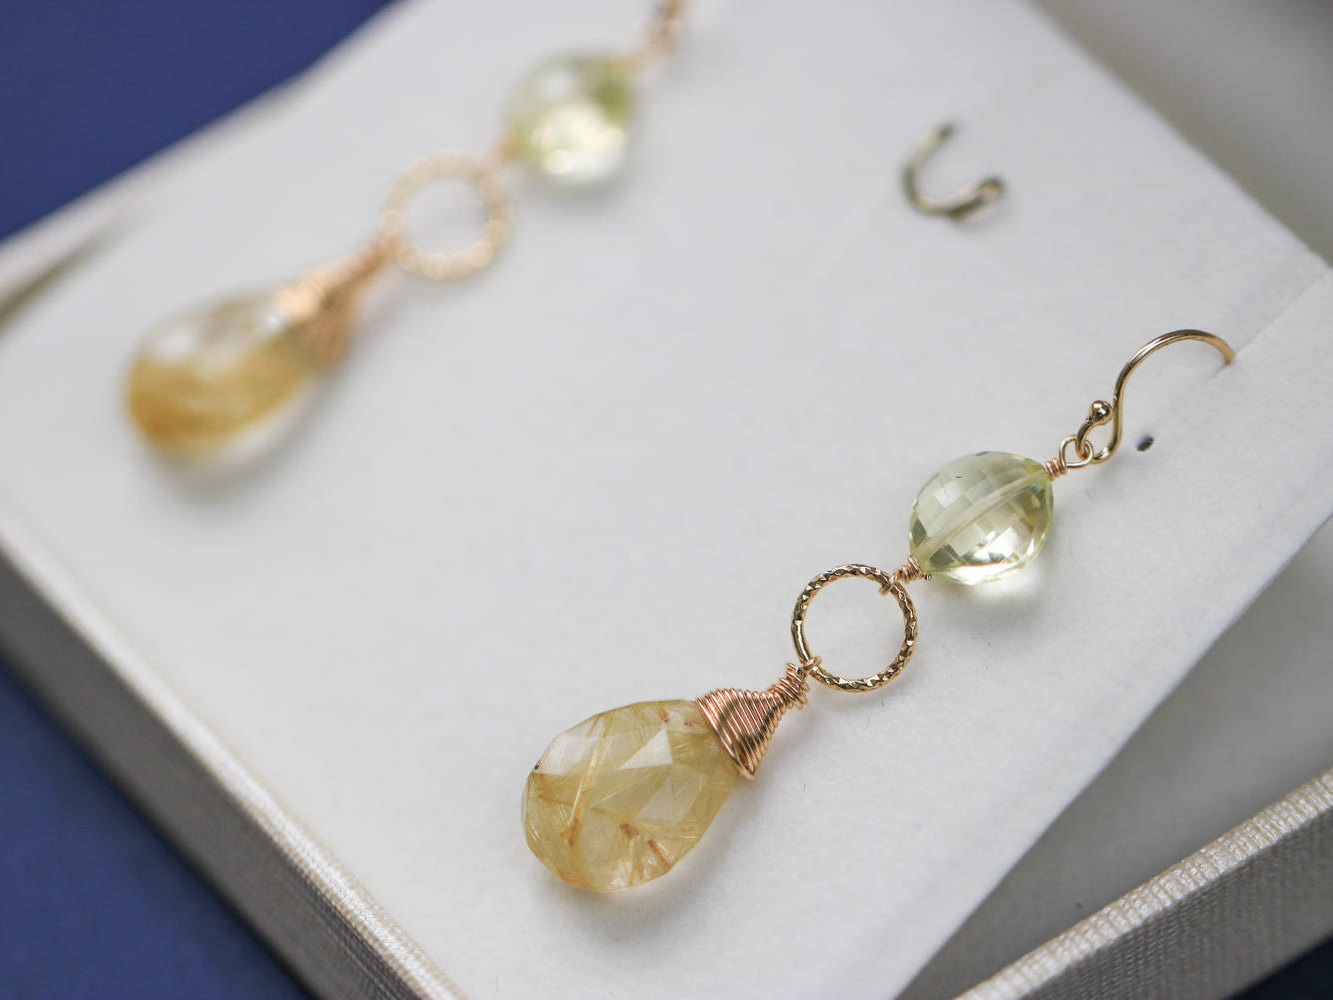 Golden rutilated quartz earrings with lemon quartz in gold for Golden rutilated quartz jewelry